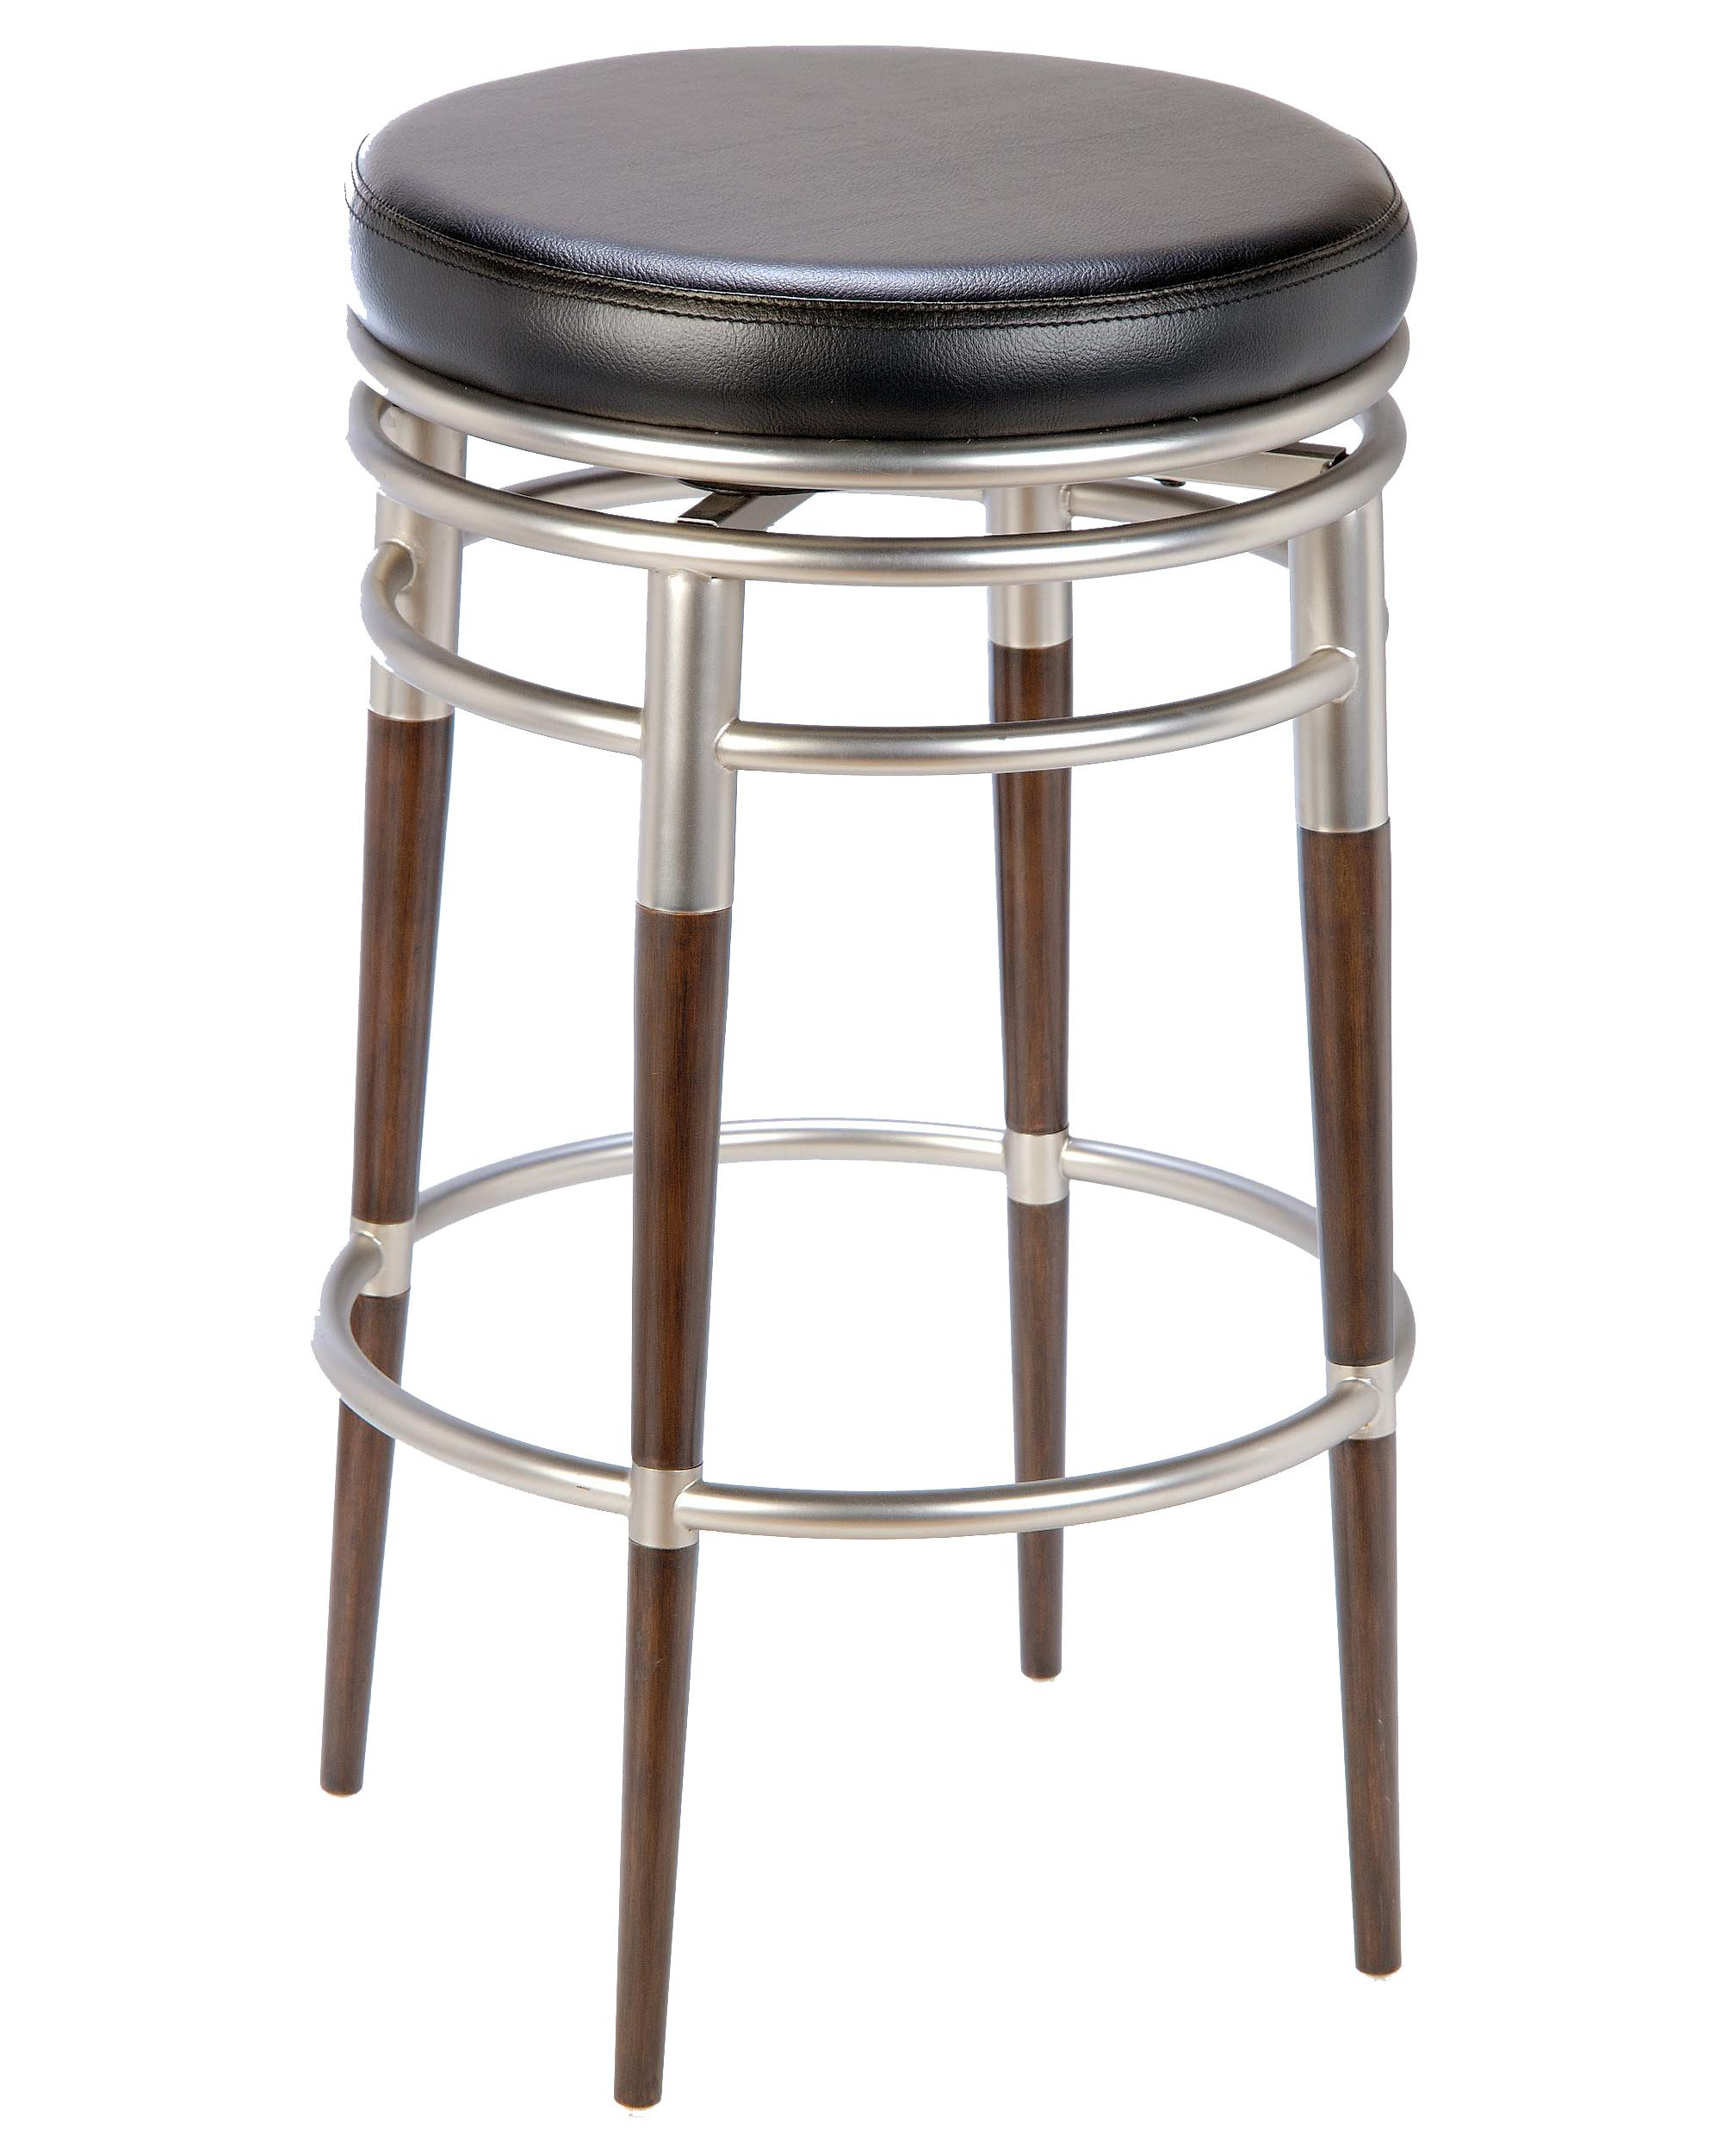 Hillsdale backless bar stools 30 salem backless swivel for Backless bar stools